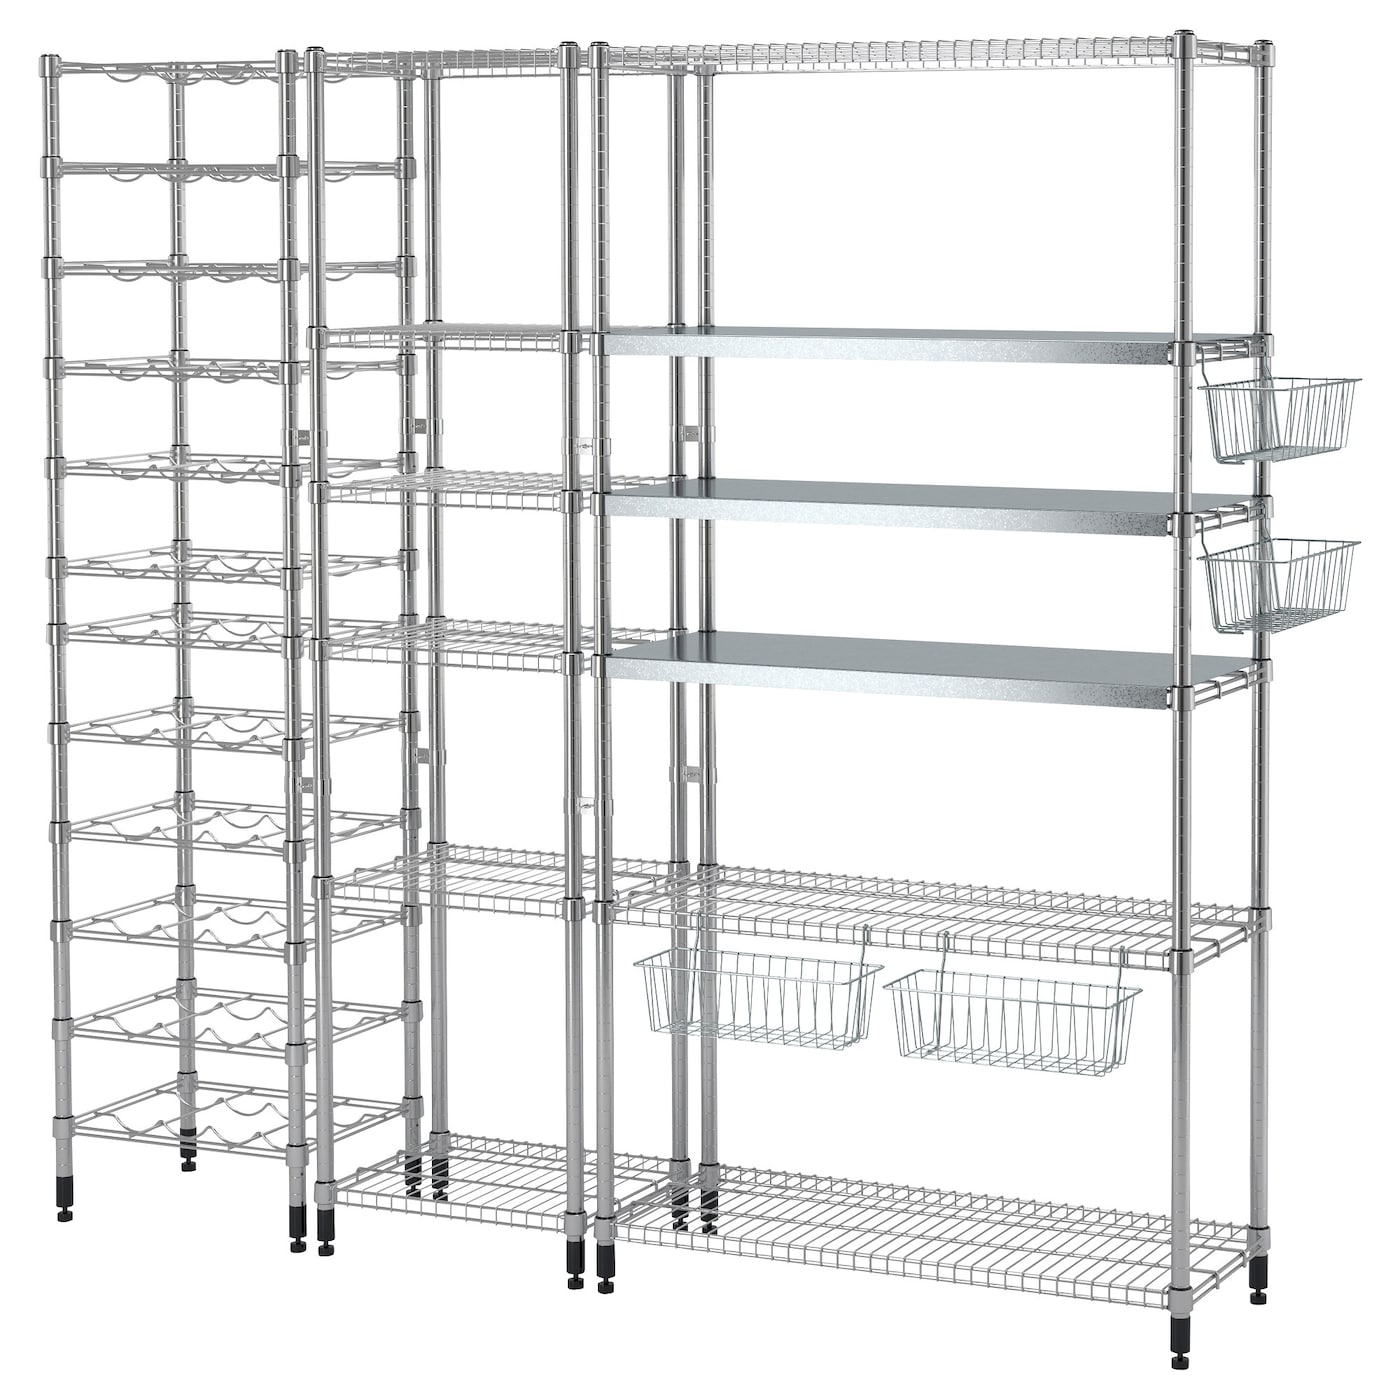 IKEA OMAR 3 shelf sections Easy to assemble – no tools required.